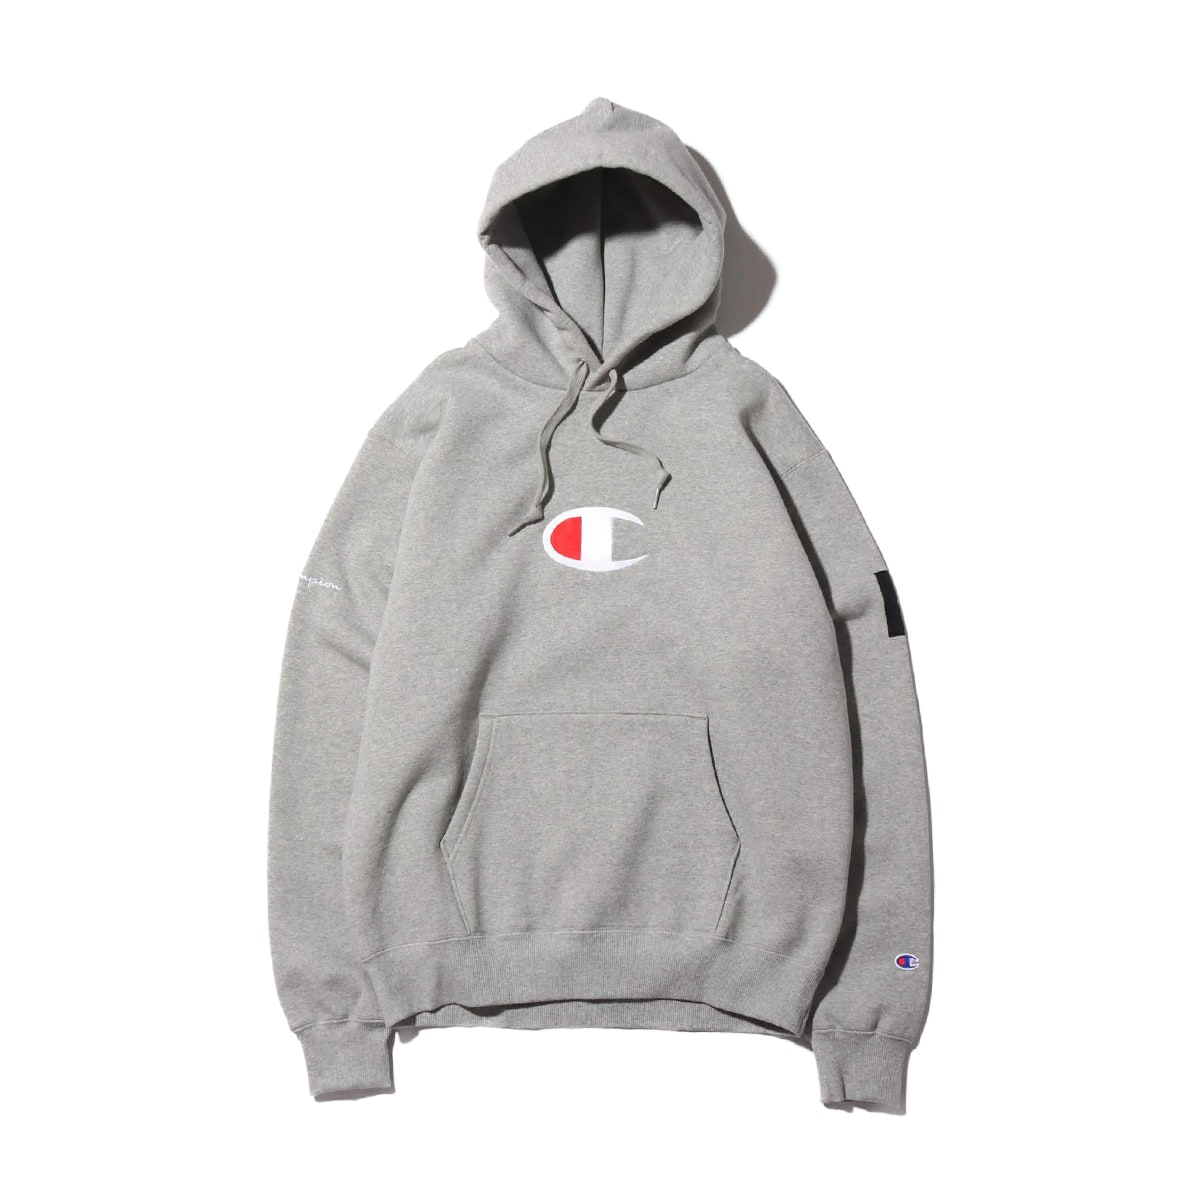 Champion x ATMOS LAB P/O HOODED SWEATSHIRT オックスフォードグレー 19FW-S_photo_large